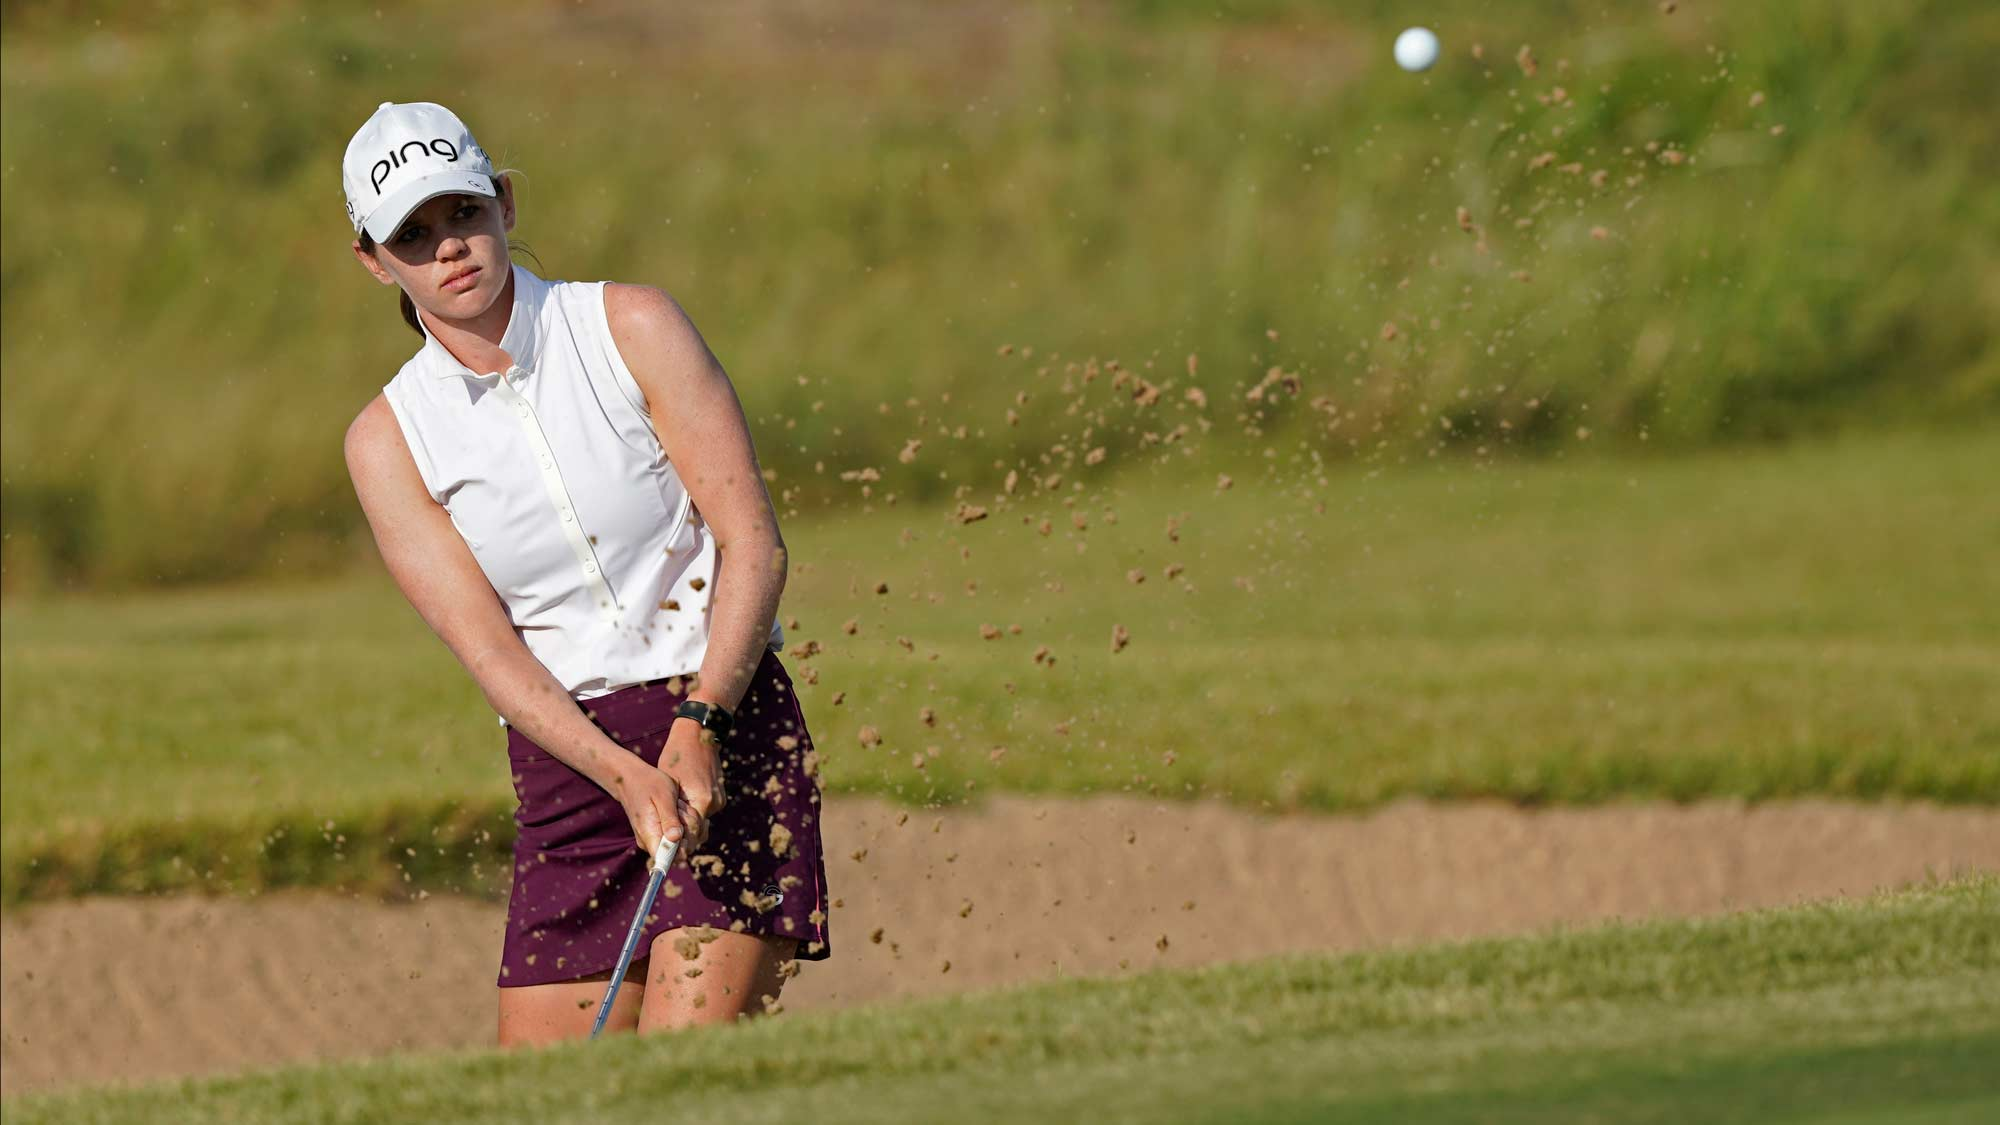 Sarah Schmelzel at the fourth round of the VOA Classic